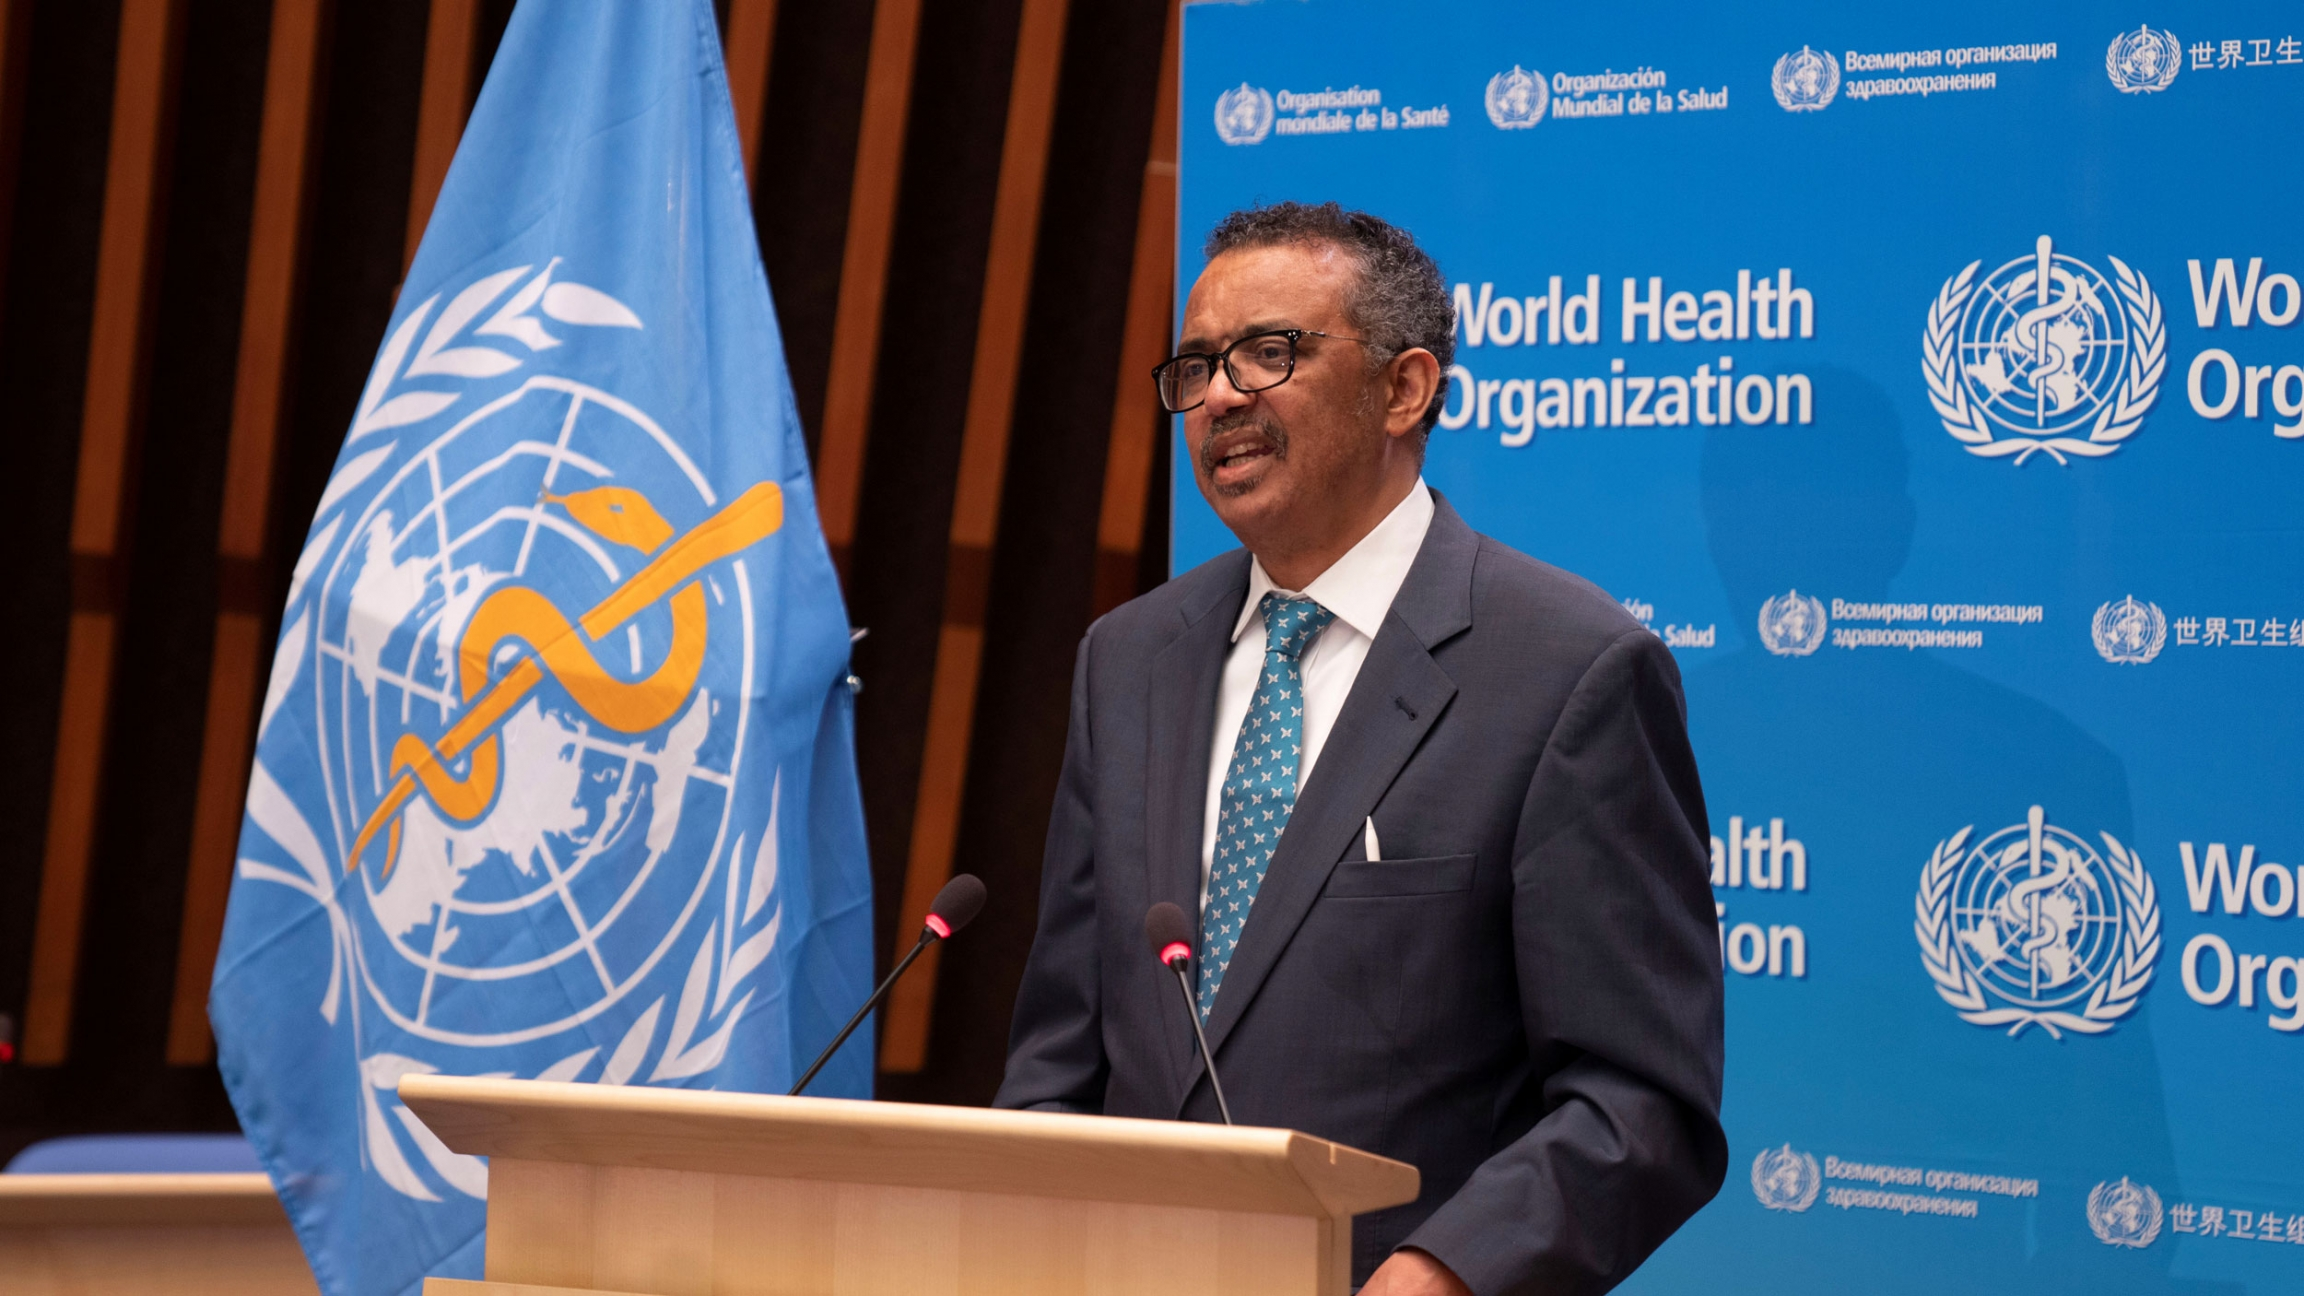 Tedros Adhanom Ghebreyesus is shown standing at a wooden podium with the blue WHO flag next to him.